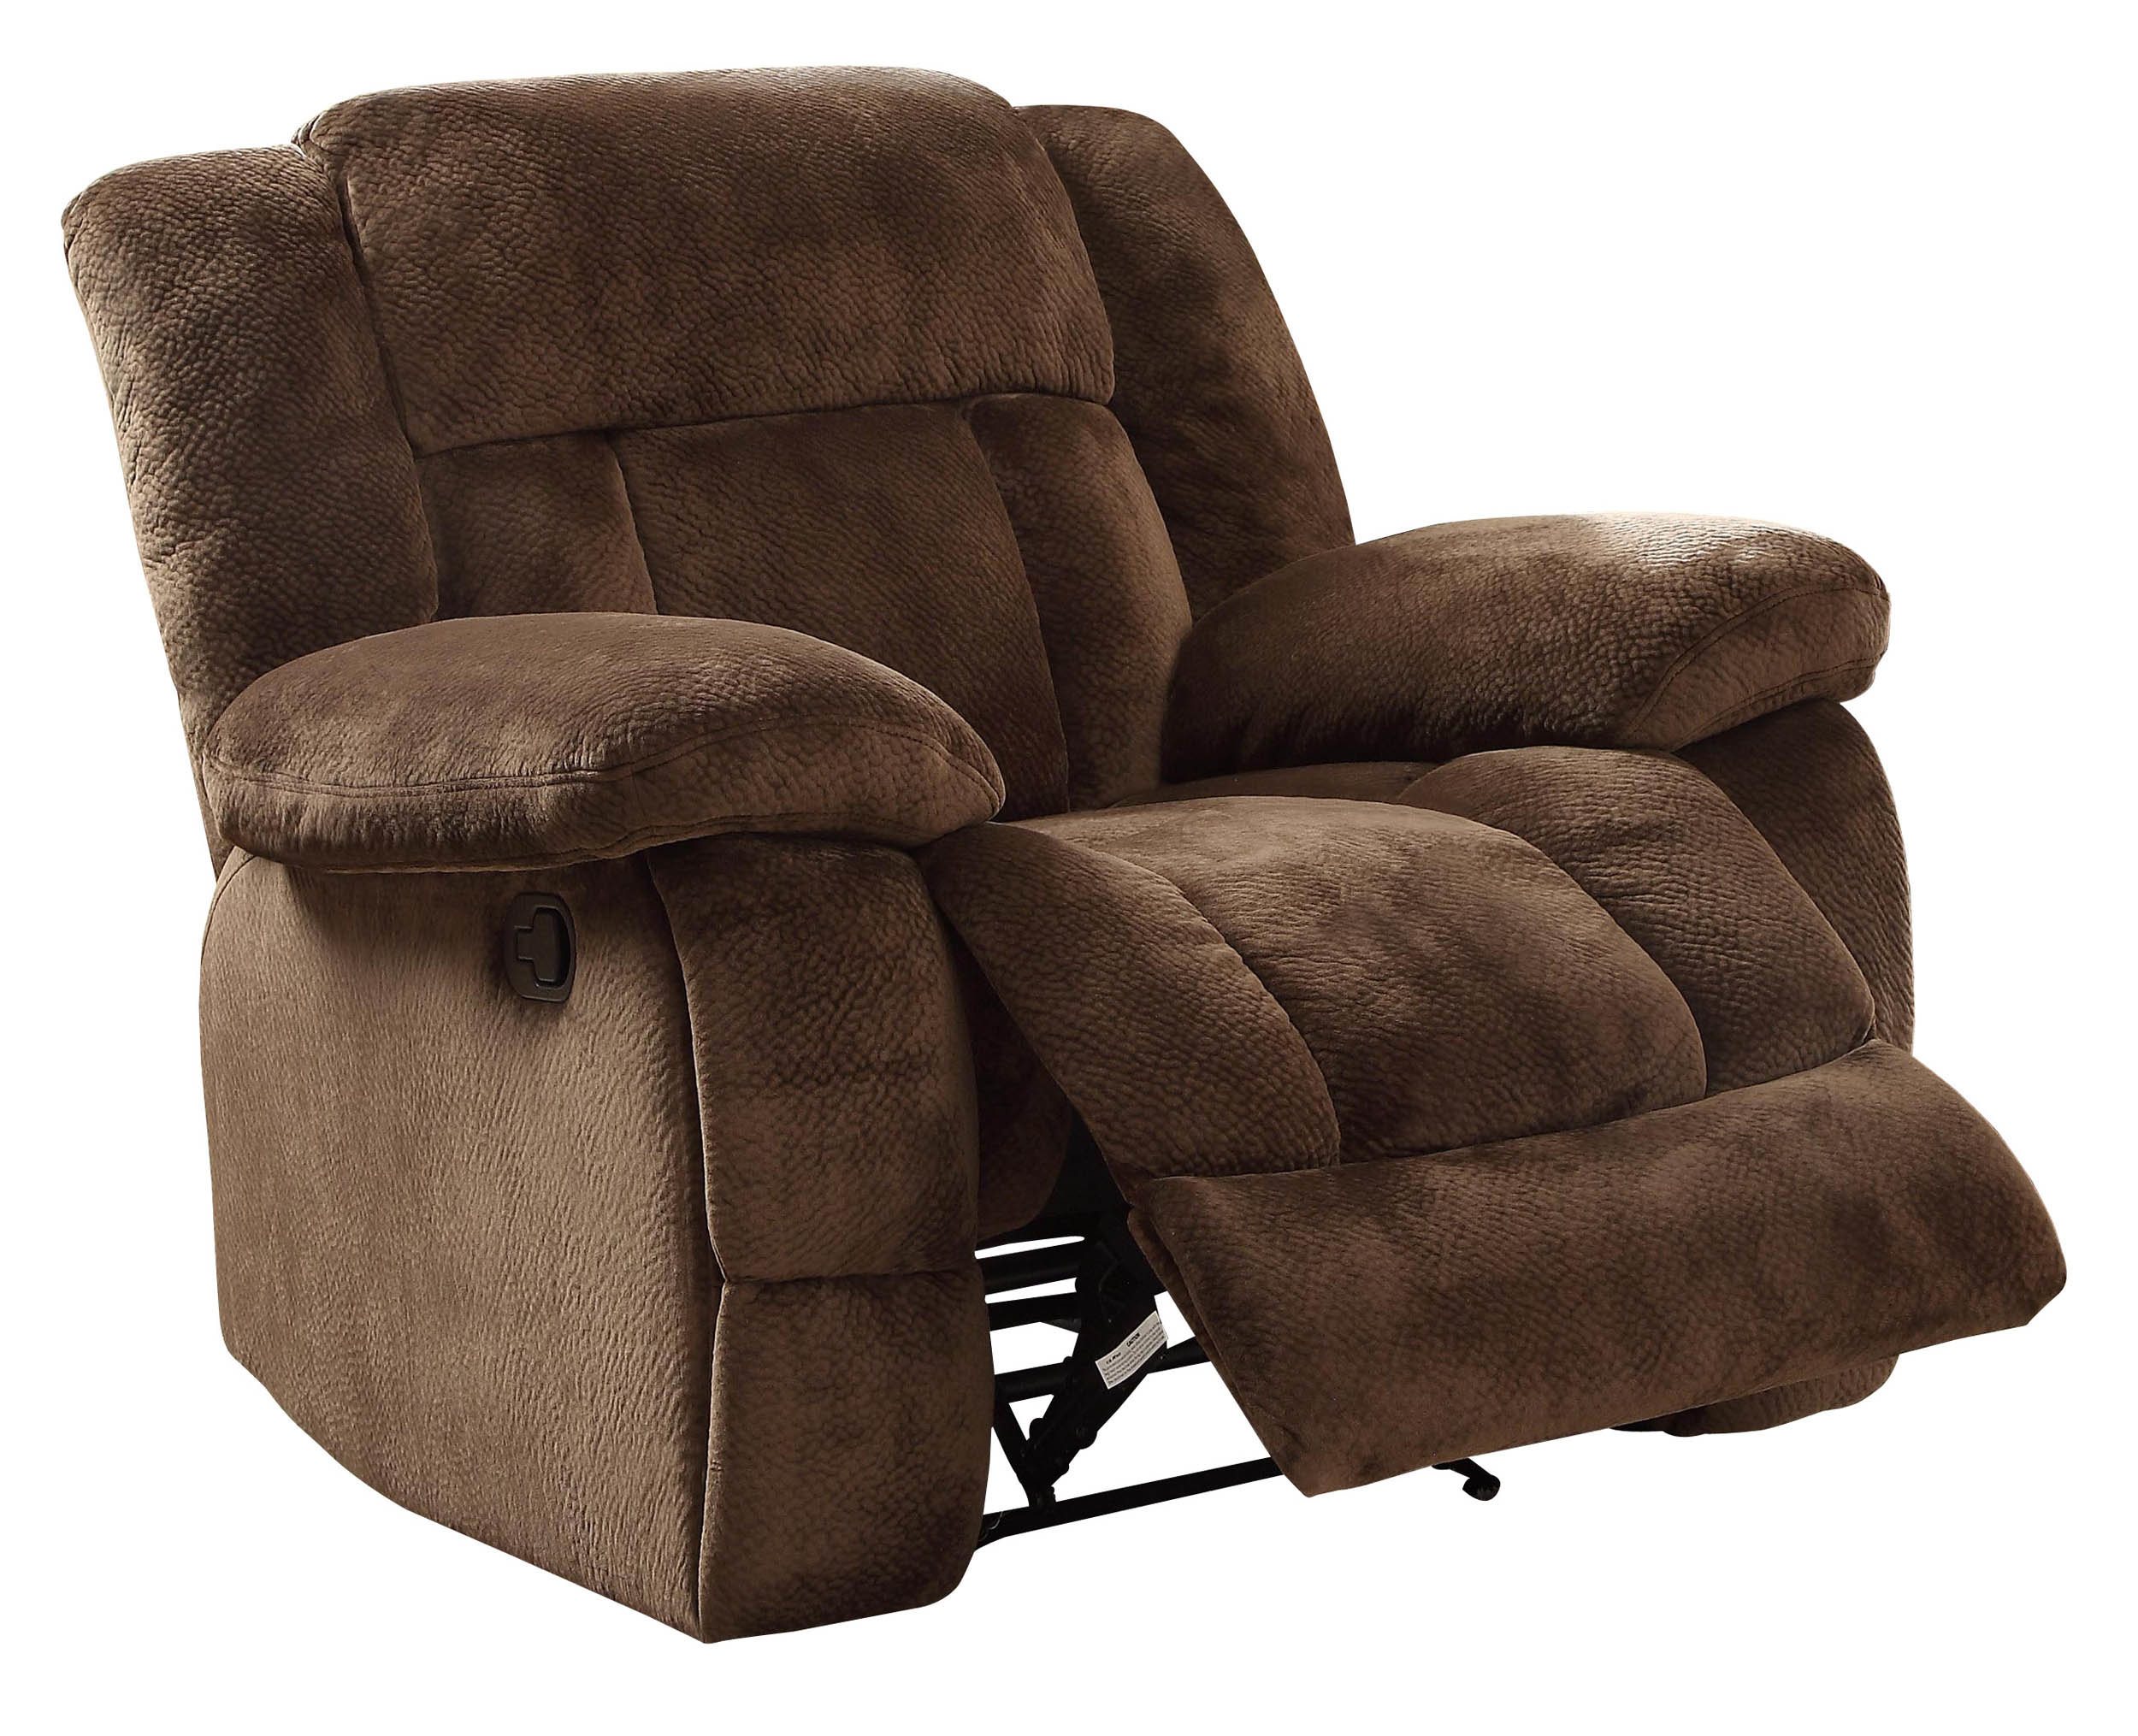 Darby Home Co Dale Manual Glider Recliner & Reviews | Wayfair Throughout Dale Iii Polyurethane Swivel Glider Recliners (Photo 2 of 20)